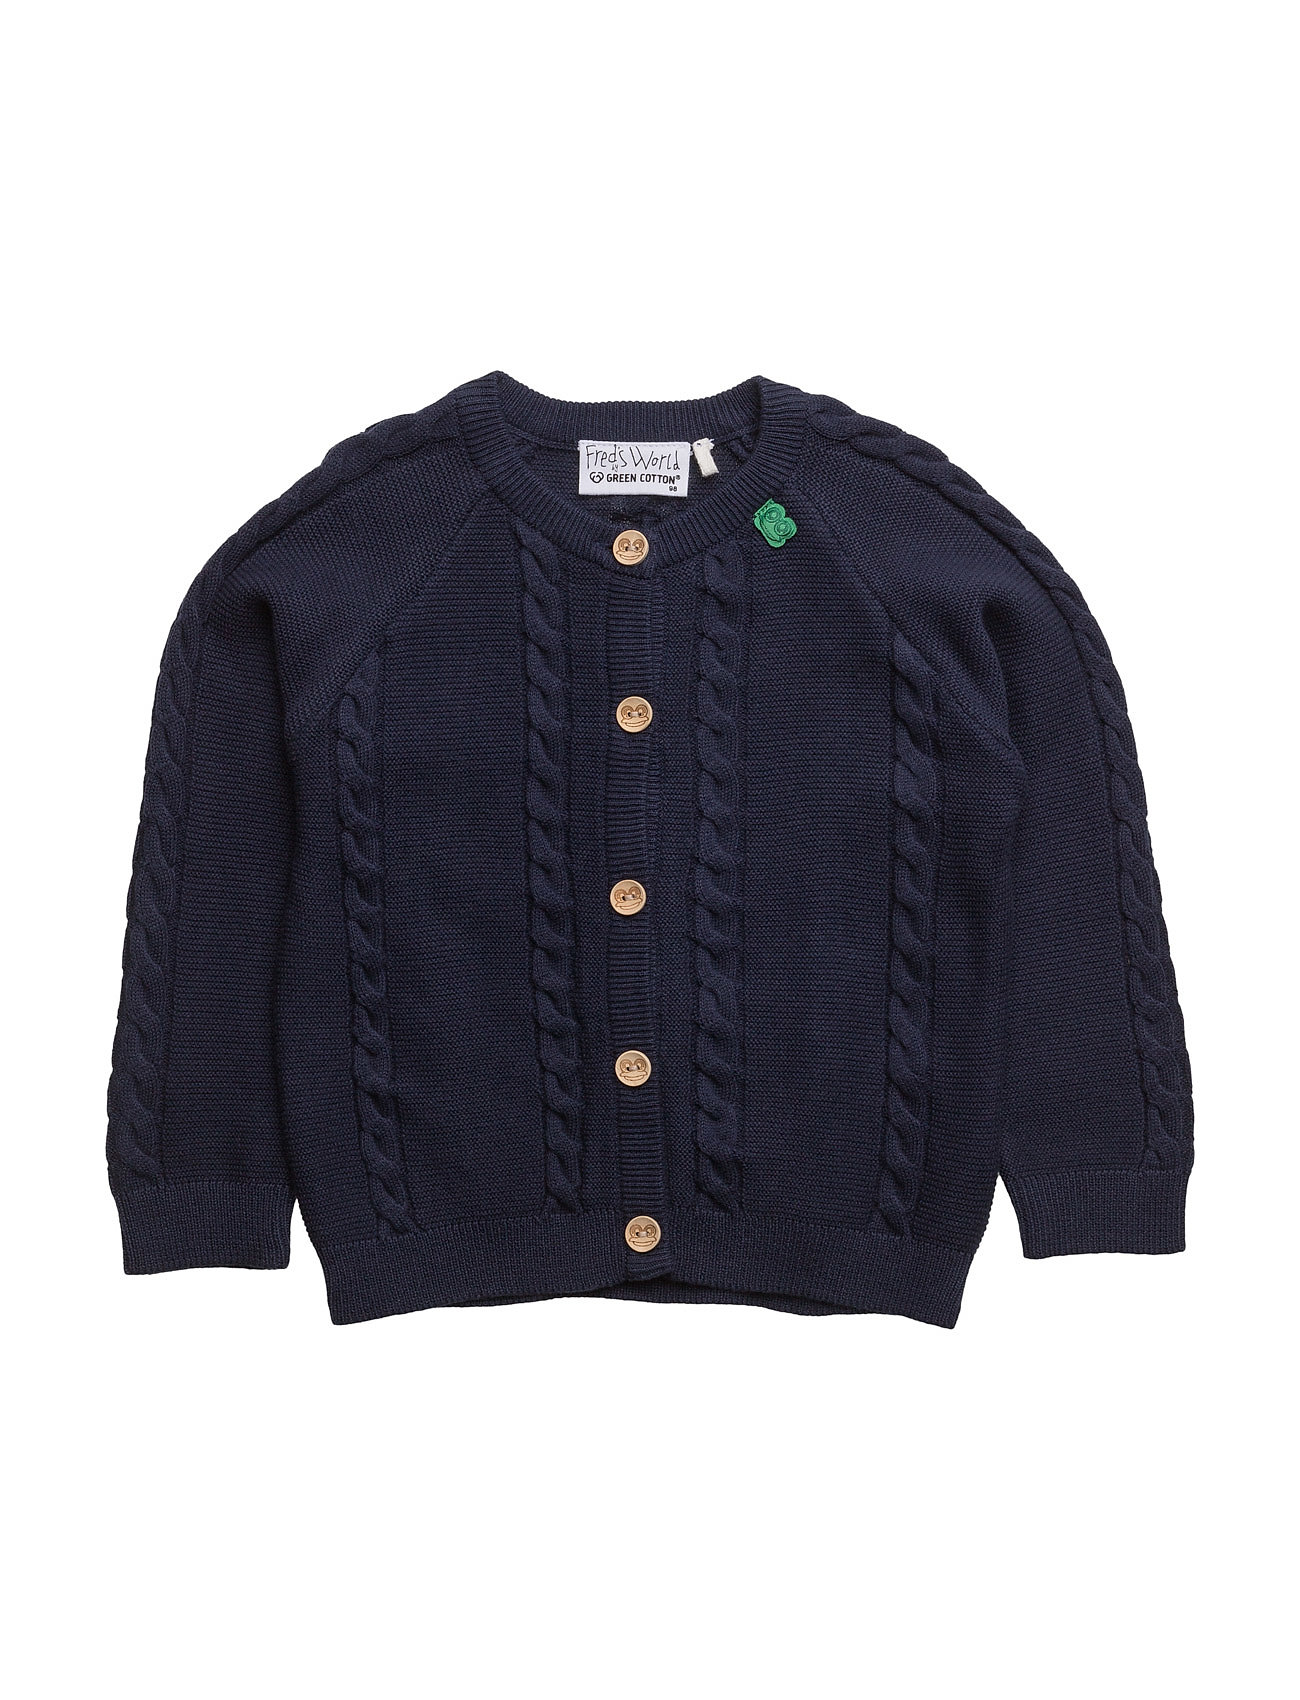 freds world – Cable knit cardigan baby fra boozt.com dk